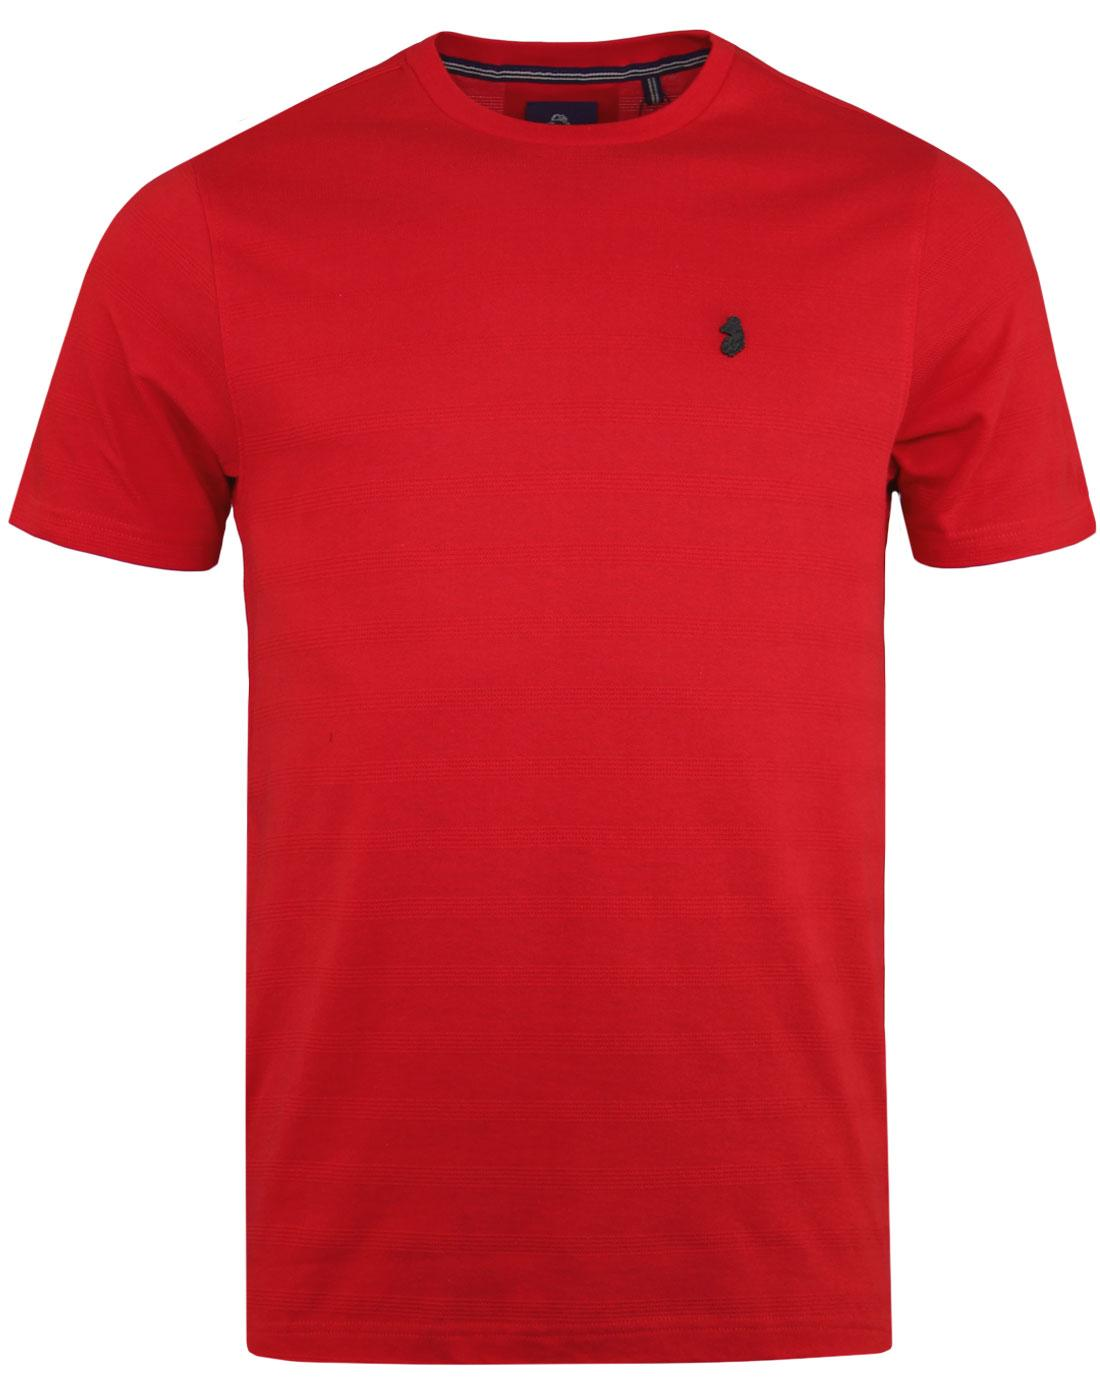 Cultraised LUKE Retro Micro Rib Crew T-shirt RED